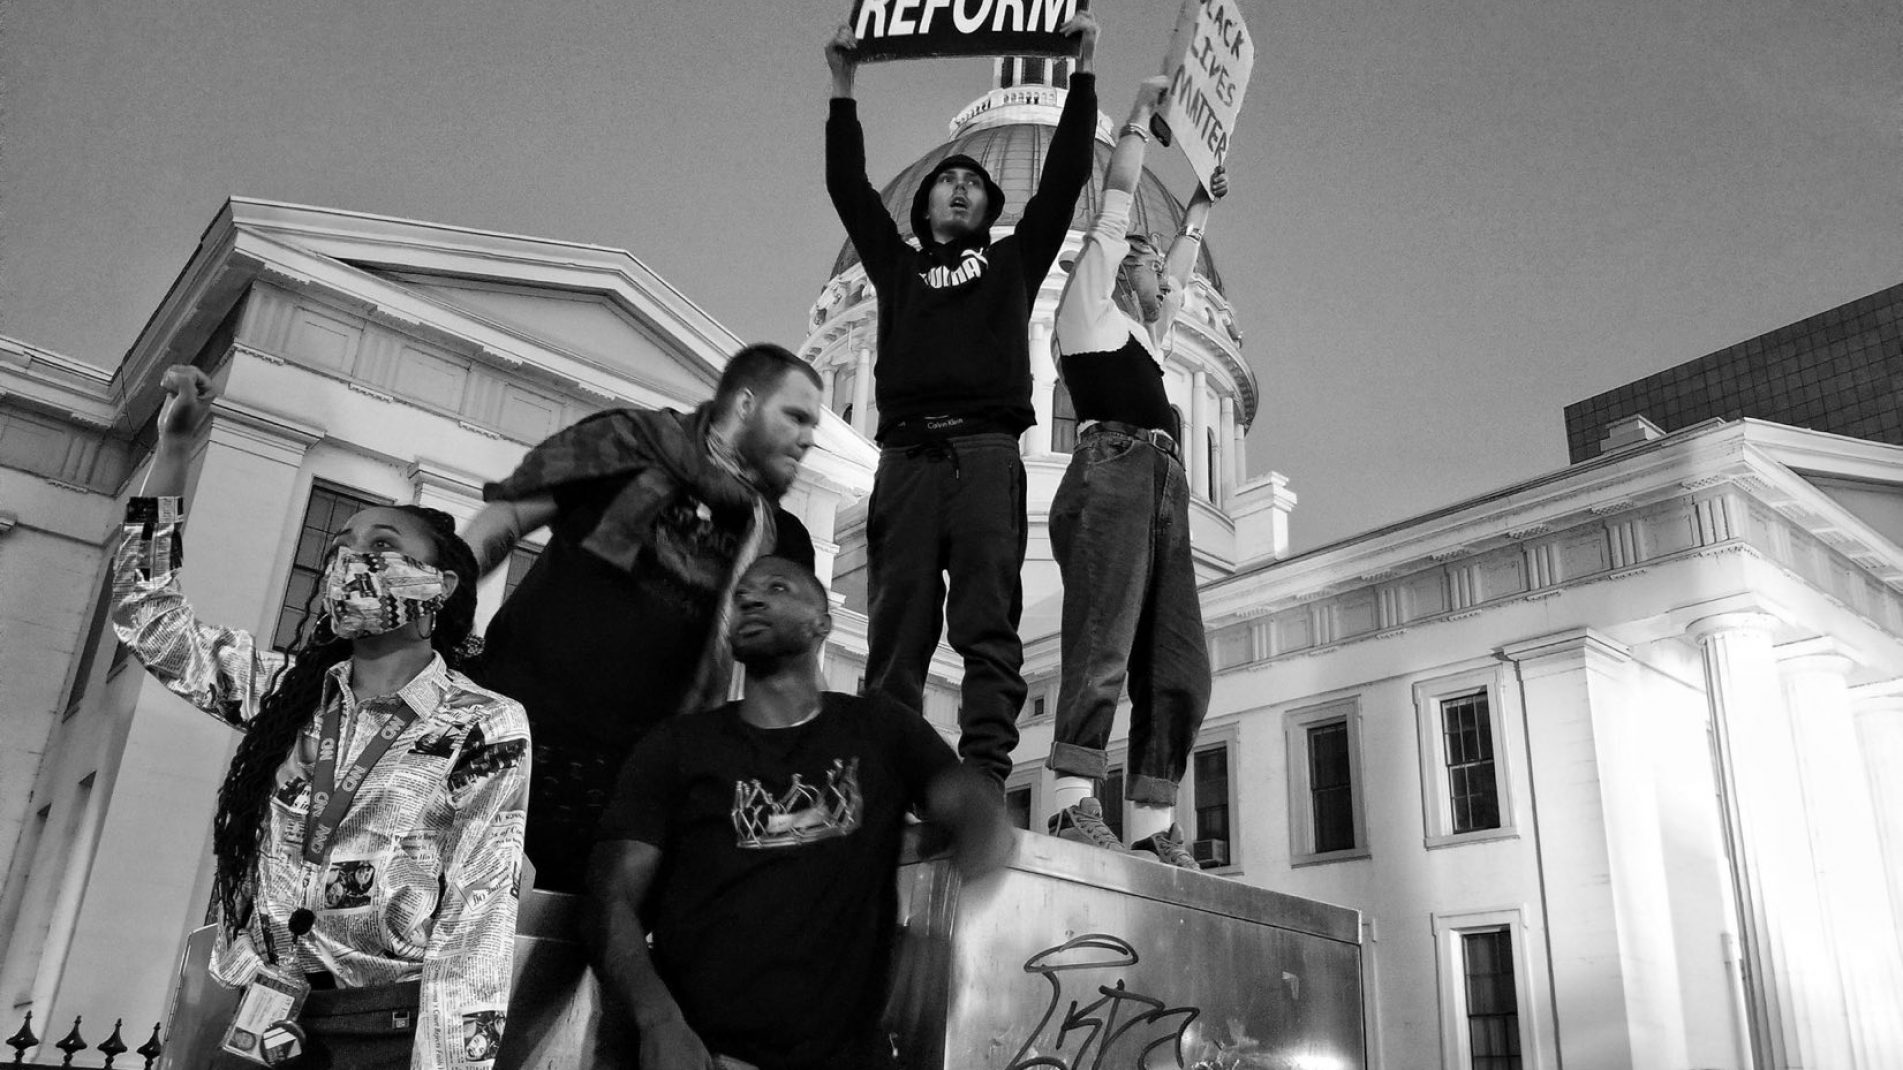 29 May 2020. People protesting over the death of George Floyd in downtown St Louis, Missouri. Photography by Vanessa Charlot.